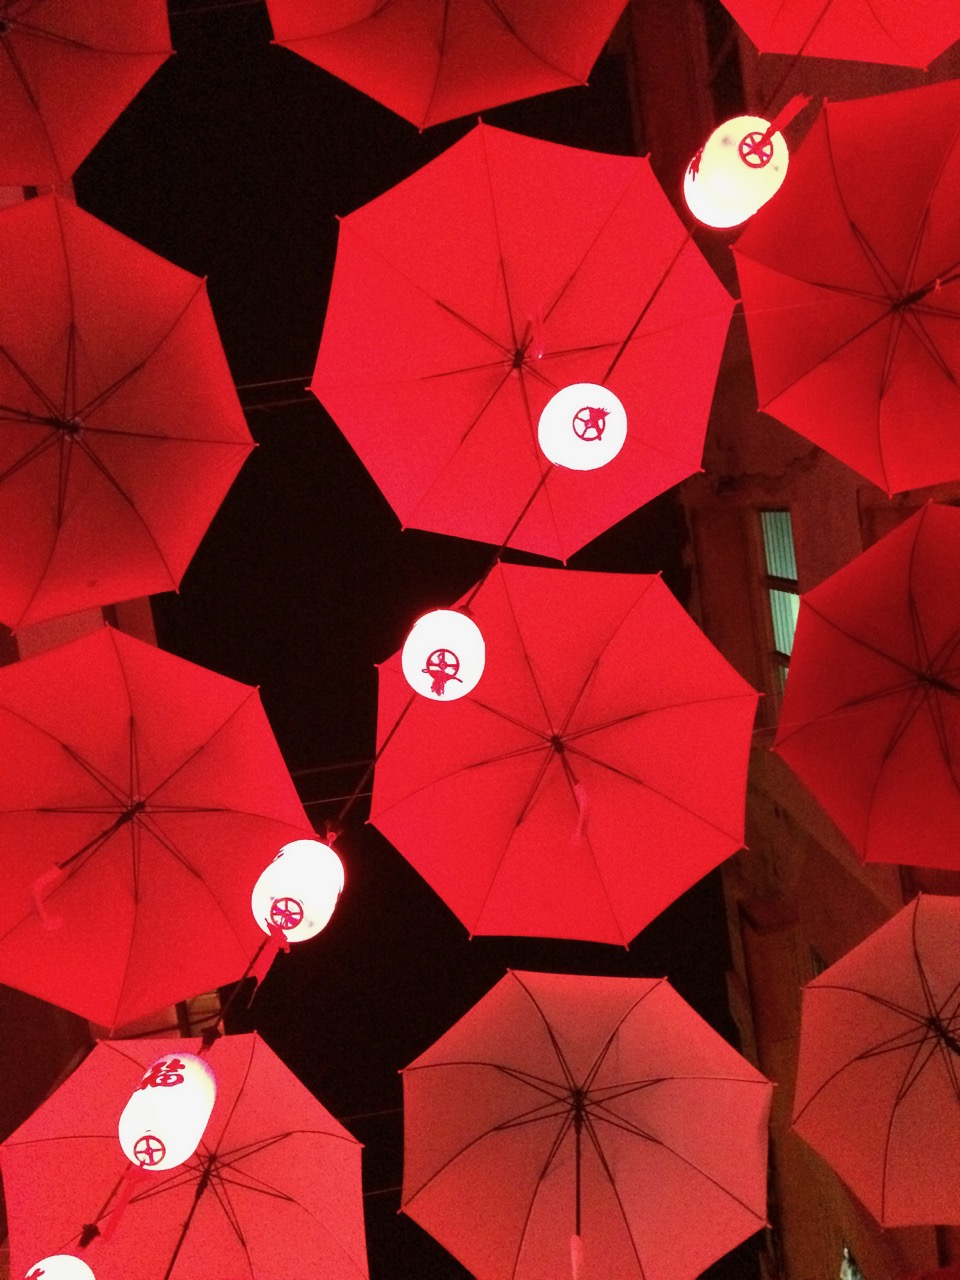 Chinese lanterns and red umbrellas